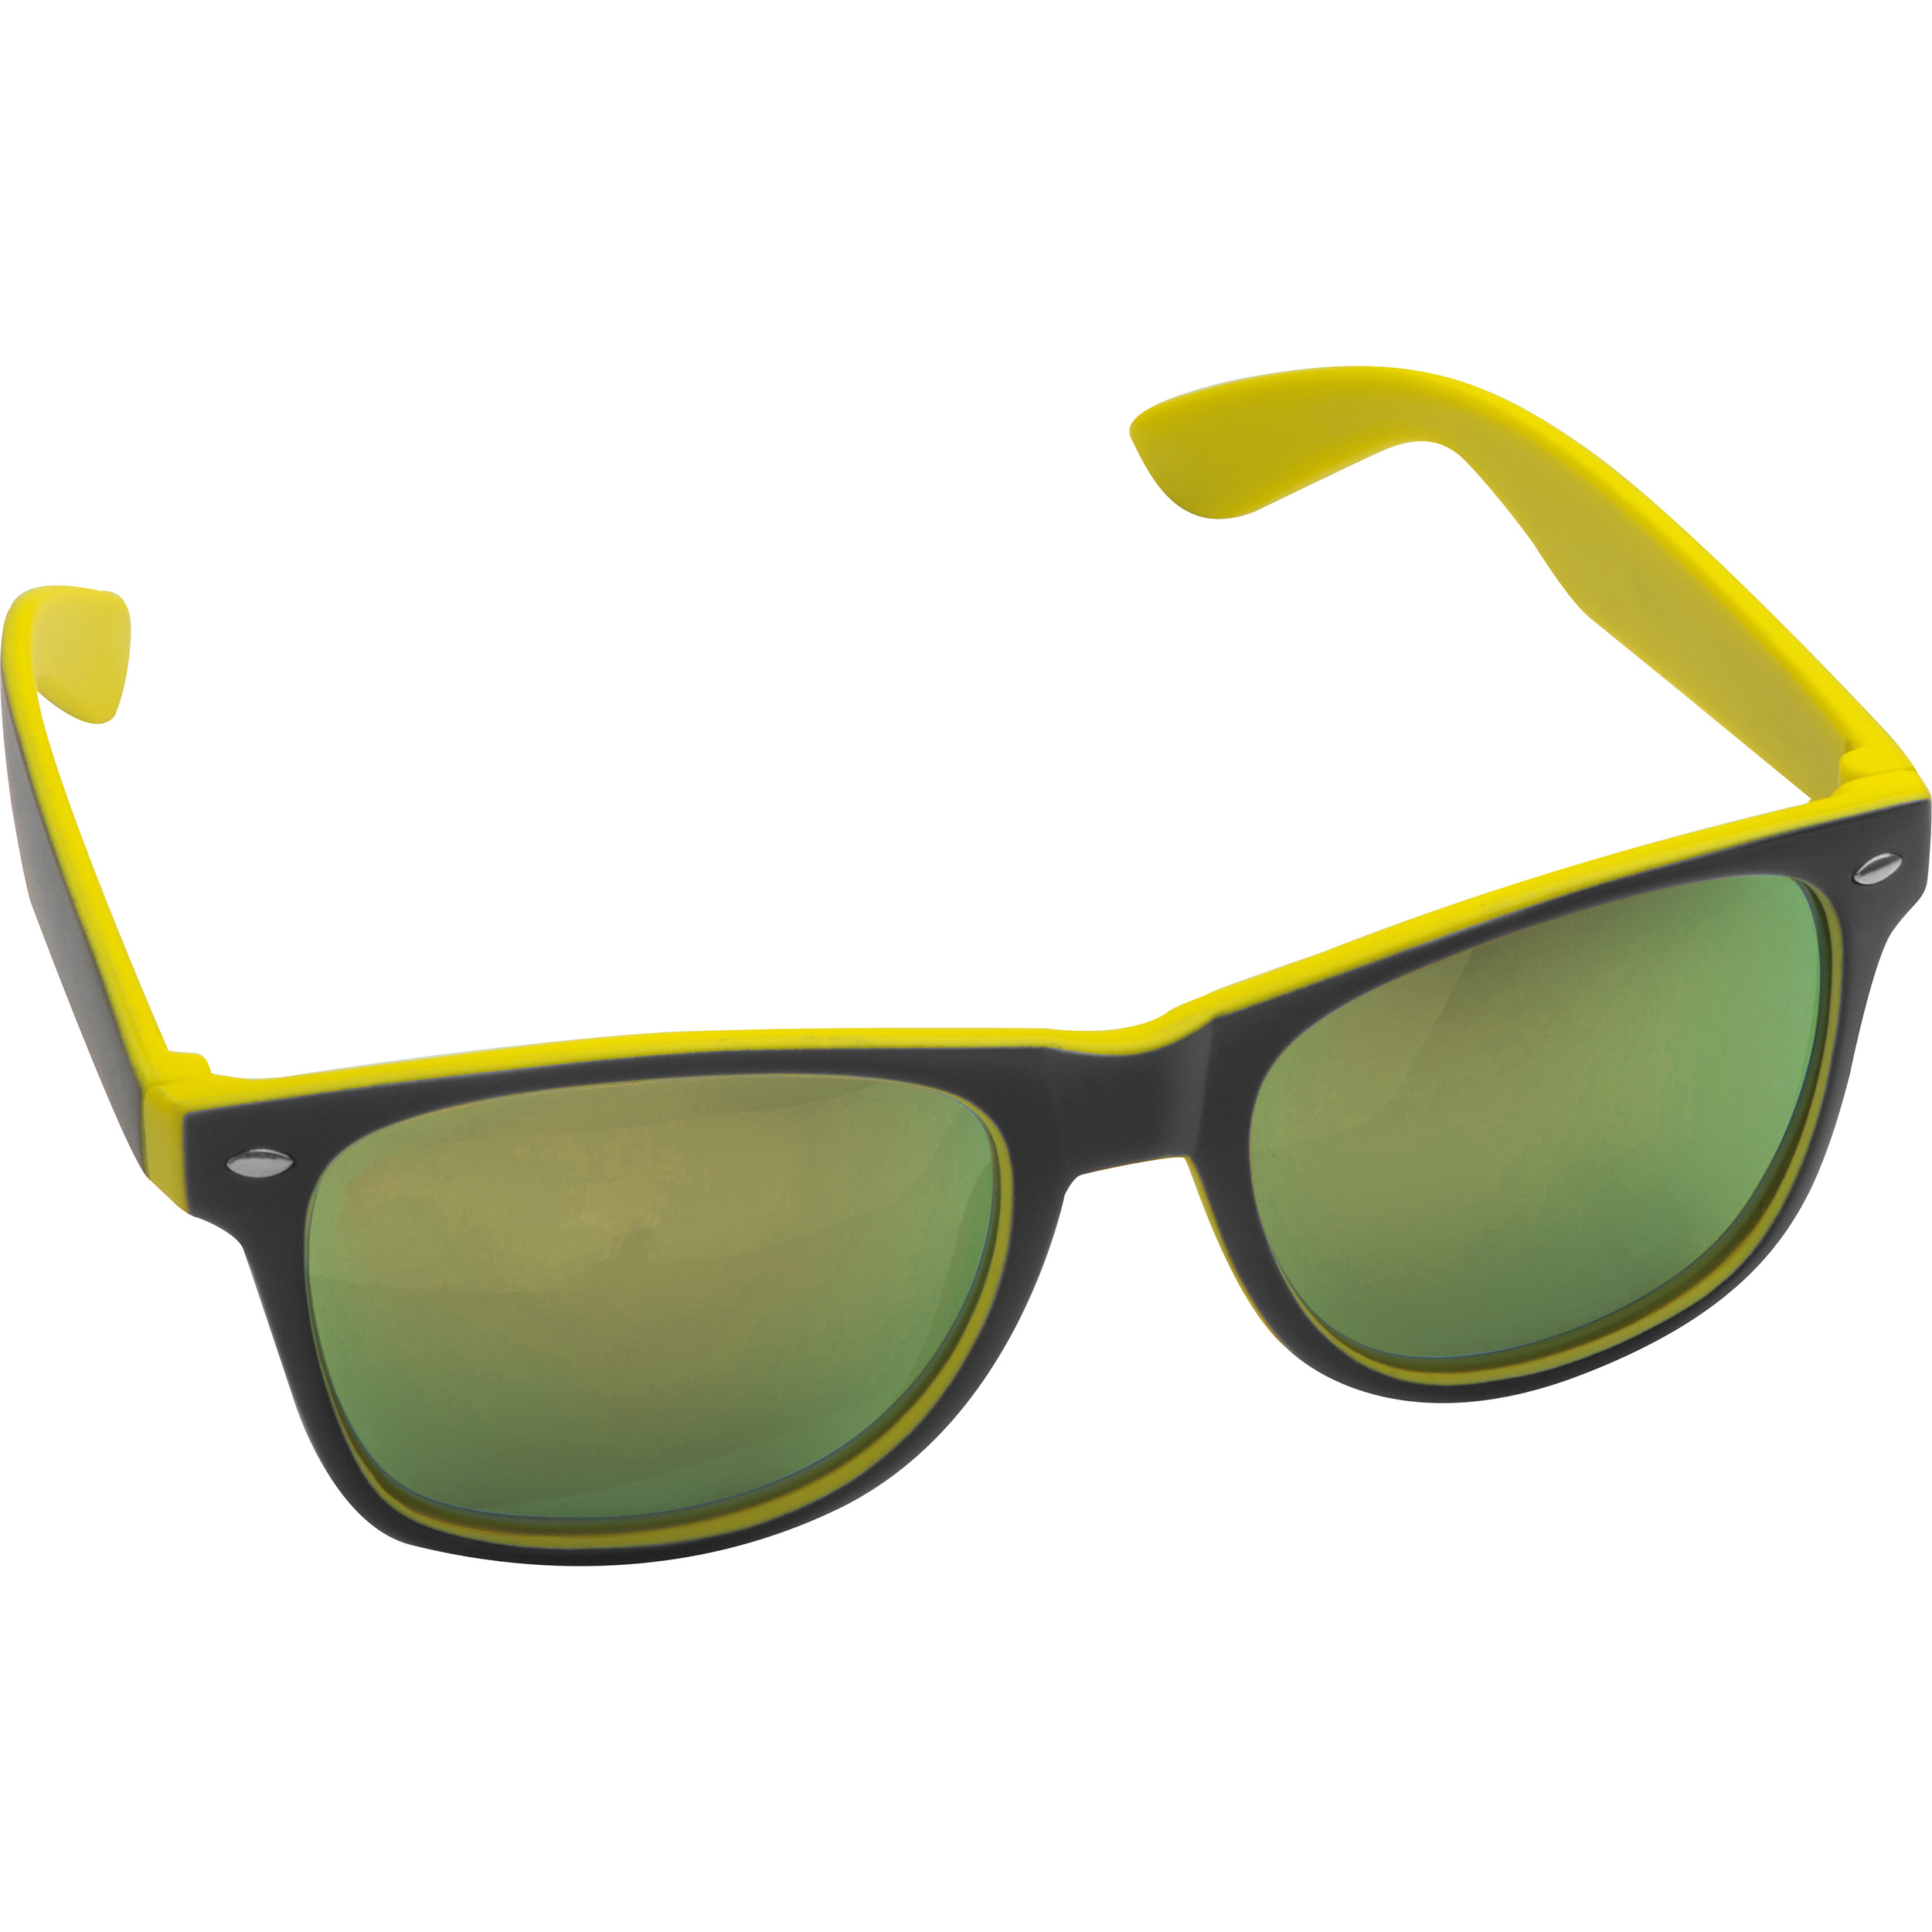 Bicoloured sunglasses with mirrored lenses